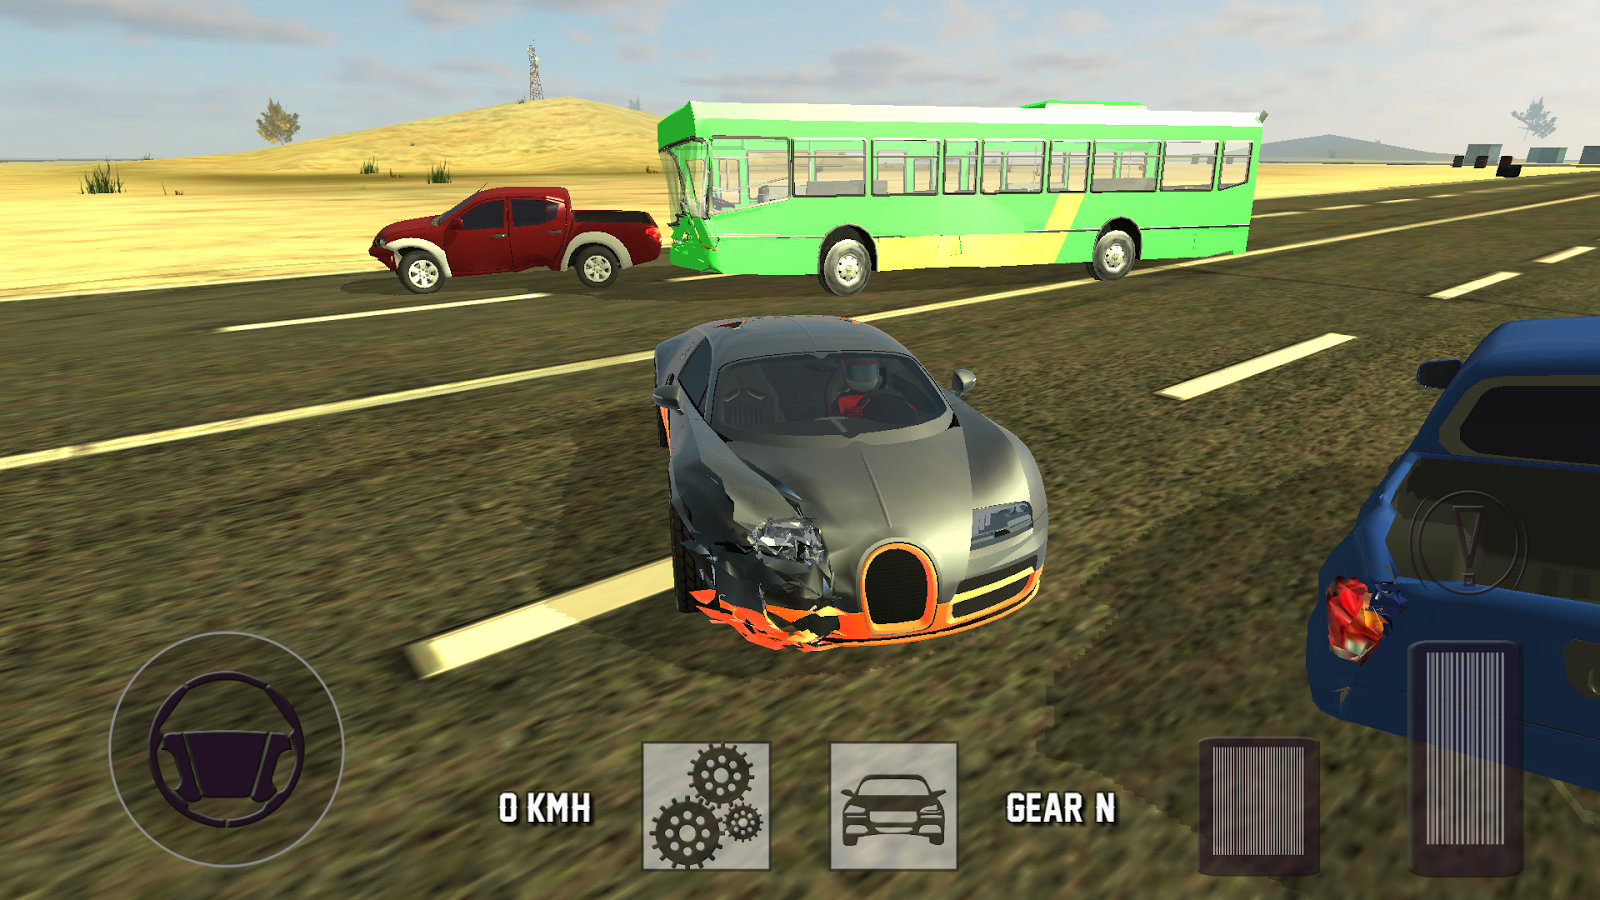 Super car city driving sim free games free online - Super Sport Car Simulator Screenshot